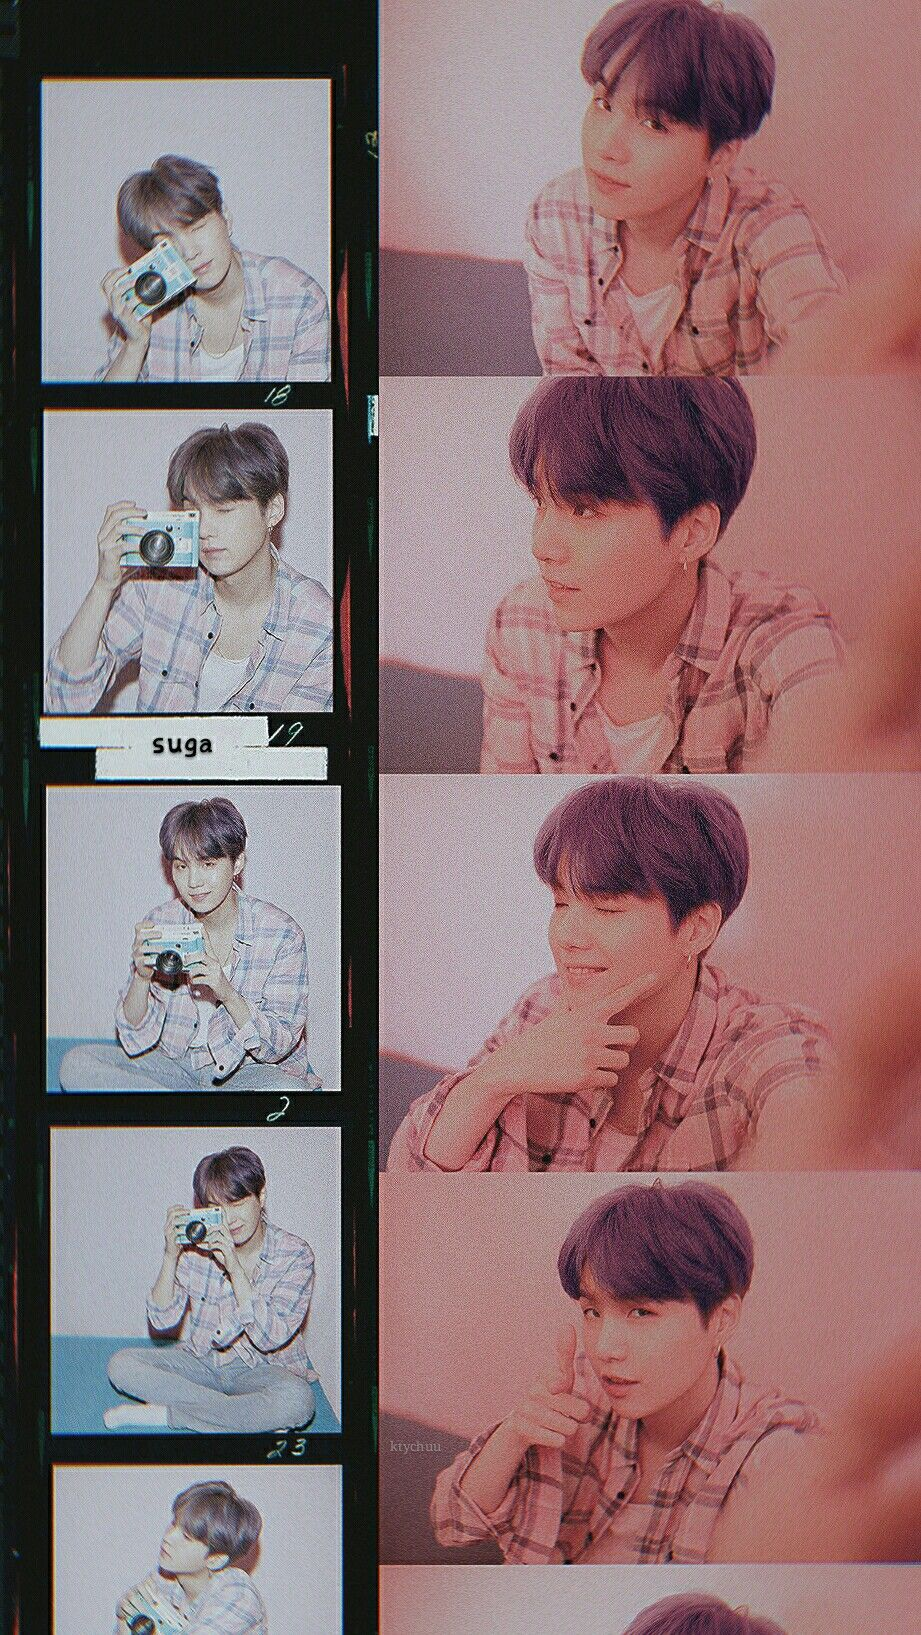 Bts Edits Bts Wallpapers Bts Map Of The Soul Persona Pls Make Sure To Follow Me Before U Save It Find More On My Ac Kertas Dinding Kolase Kolase Foto